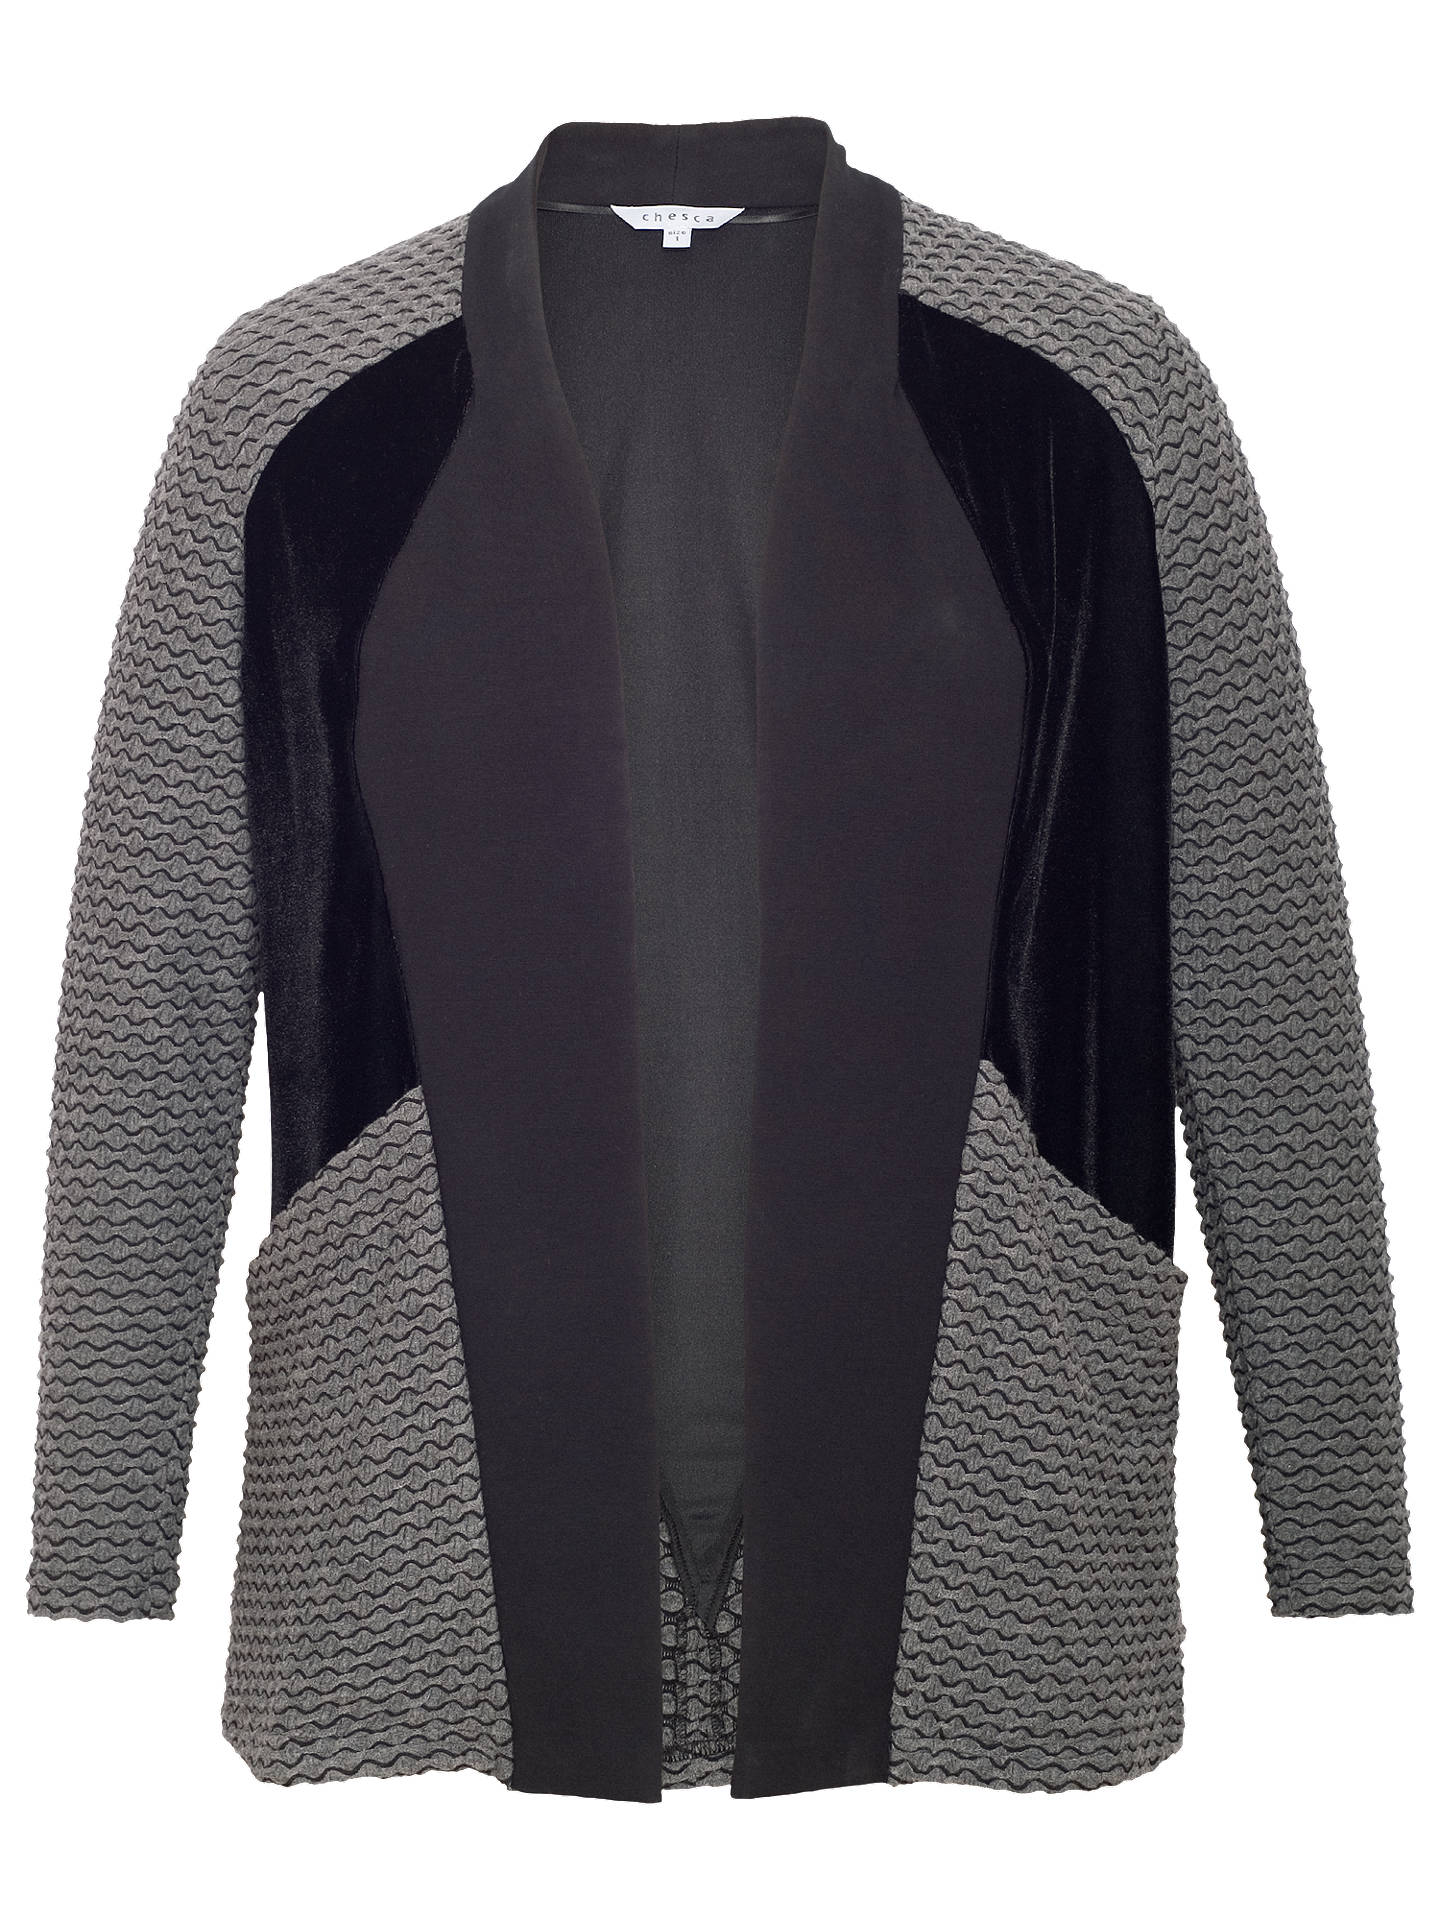 BuyChesca Mini Wavy Shrug, Charcoal, 12-14 Online at johnlewis.com